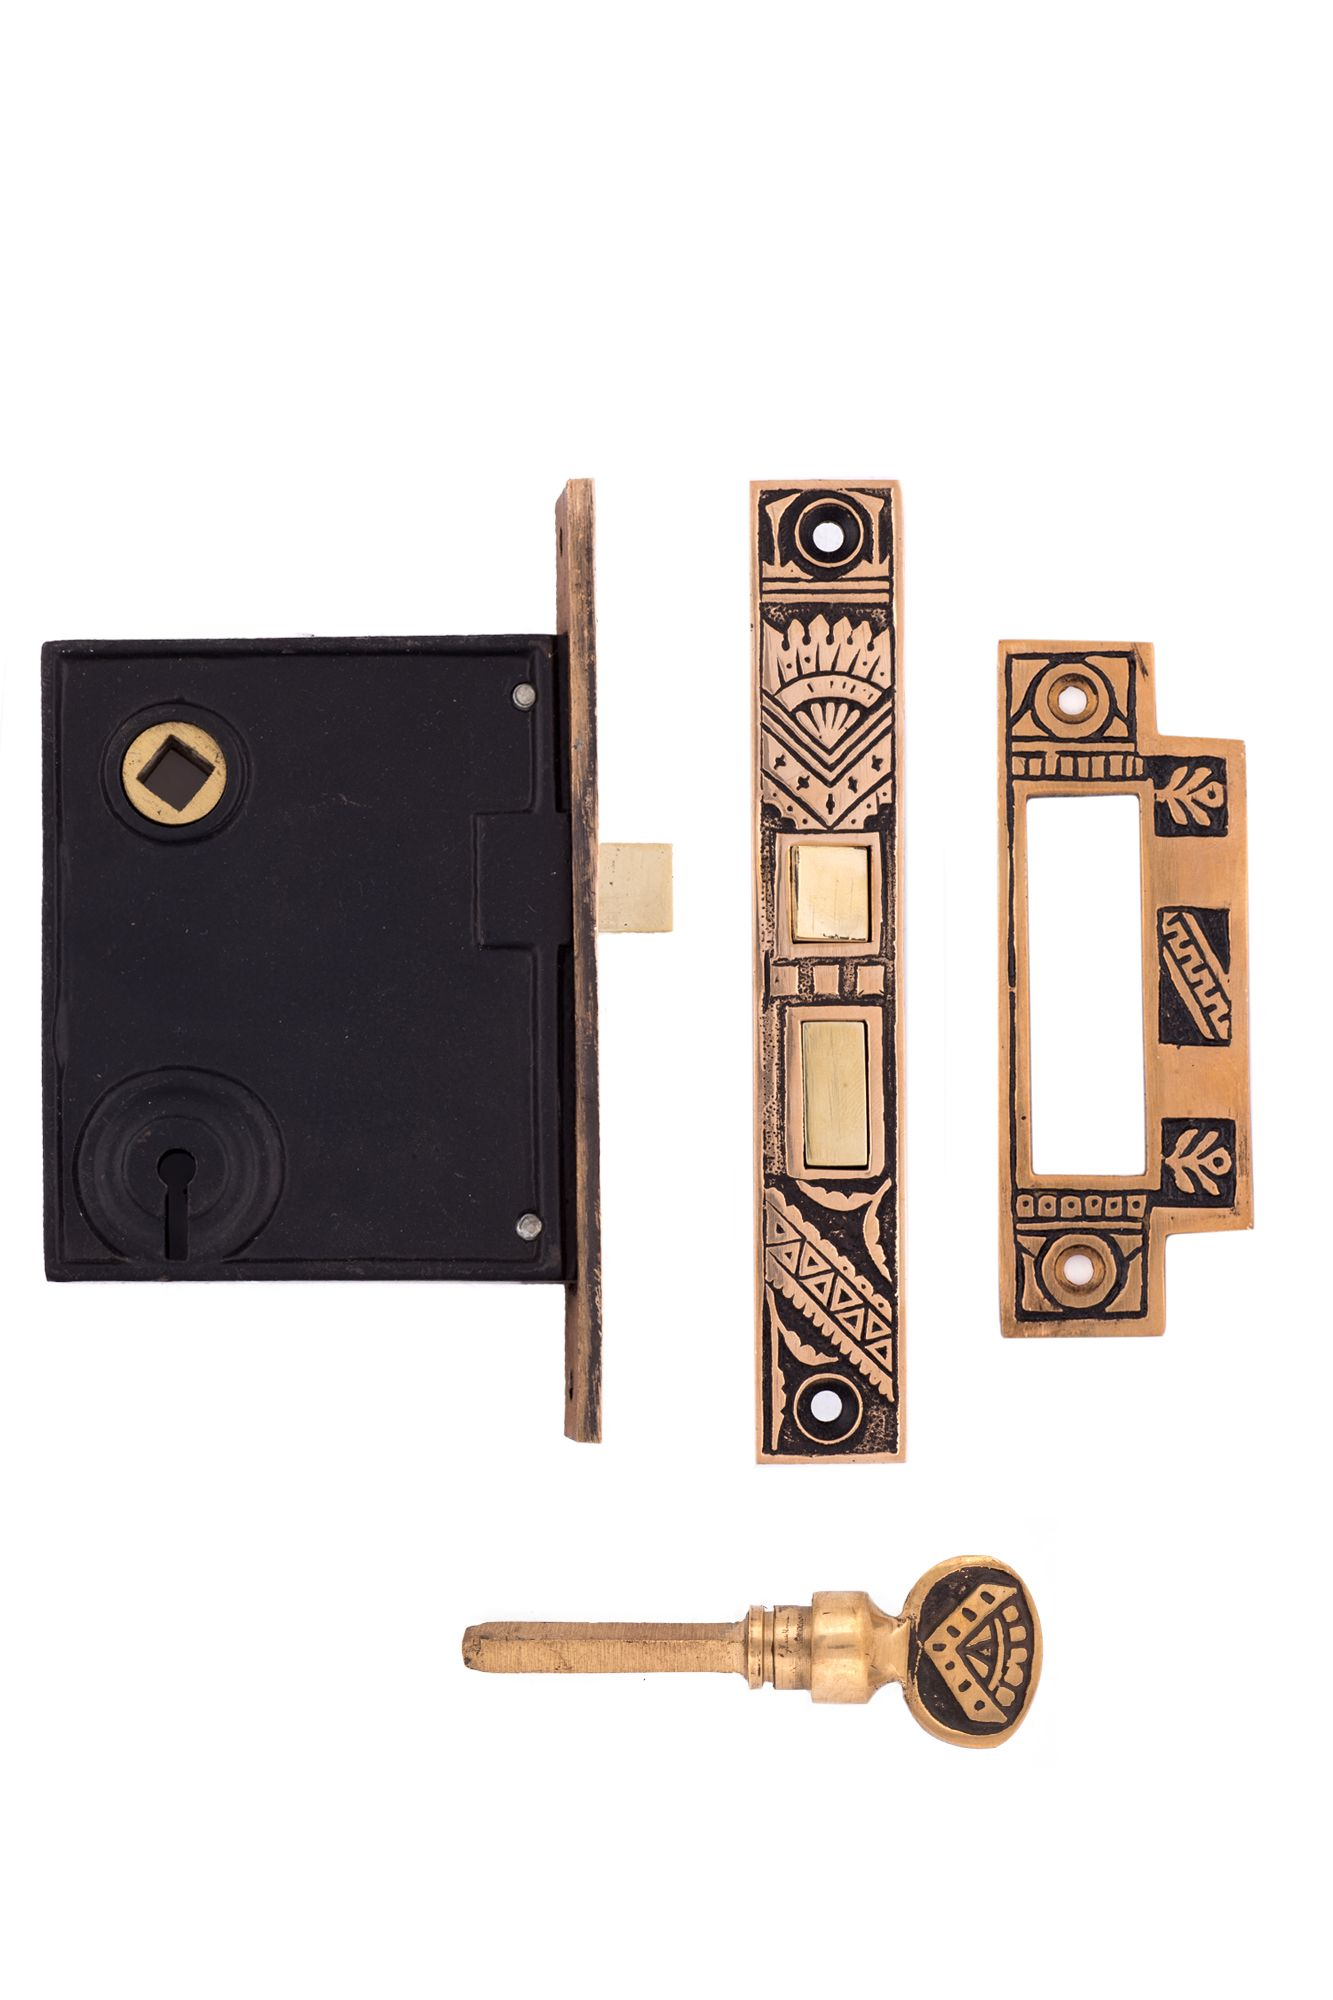 Oriental Privacy Mortise Lock Strike Plate1301a Us By Charleston Hardware With Images Mortise Lock Oriental Pattern Lock Set